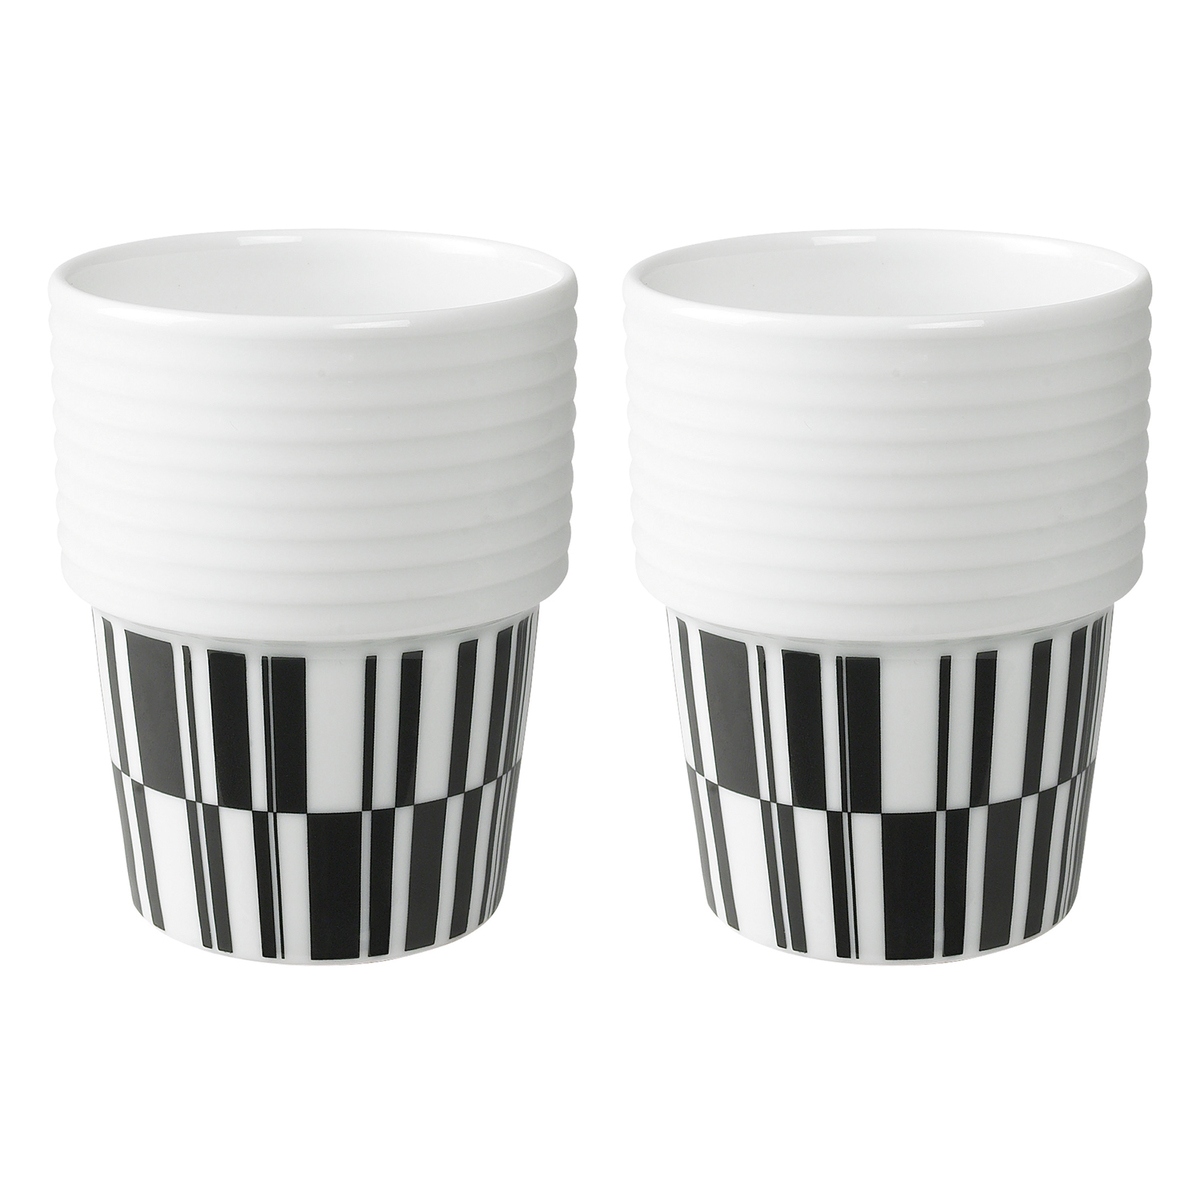 rörstrand filippa k coffee mug 0,31 l, 2 pcs, deco